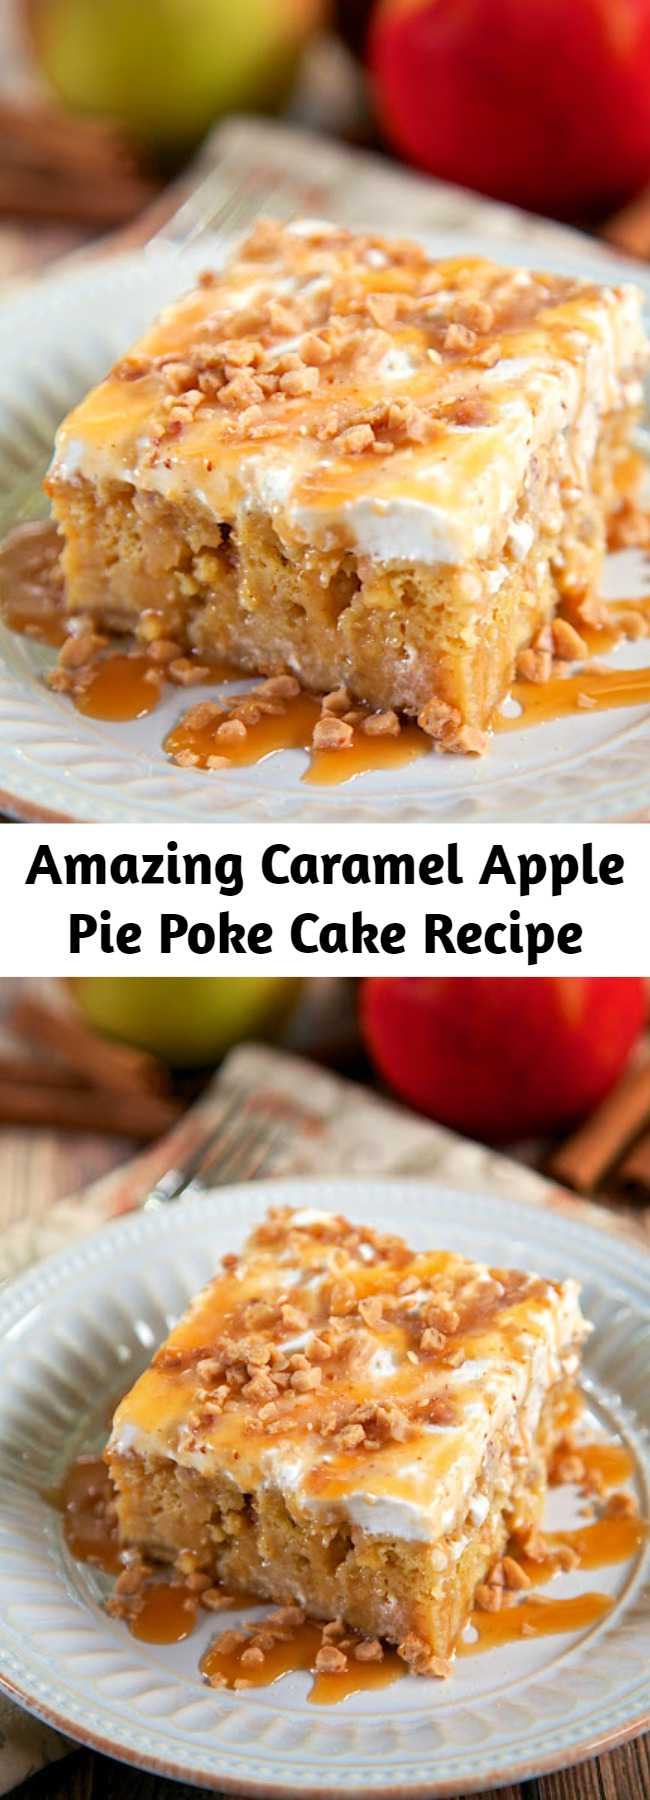 Amazing Caramel Apple Pie Poke Cake Recipe - Apple cake soaked in caramel sauce topped with cool whip and toffee bits – AMAZING! Can make ahead of time and refrigerate. It gets better as it sits in the fridge. Super delicious cake!